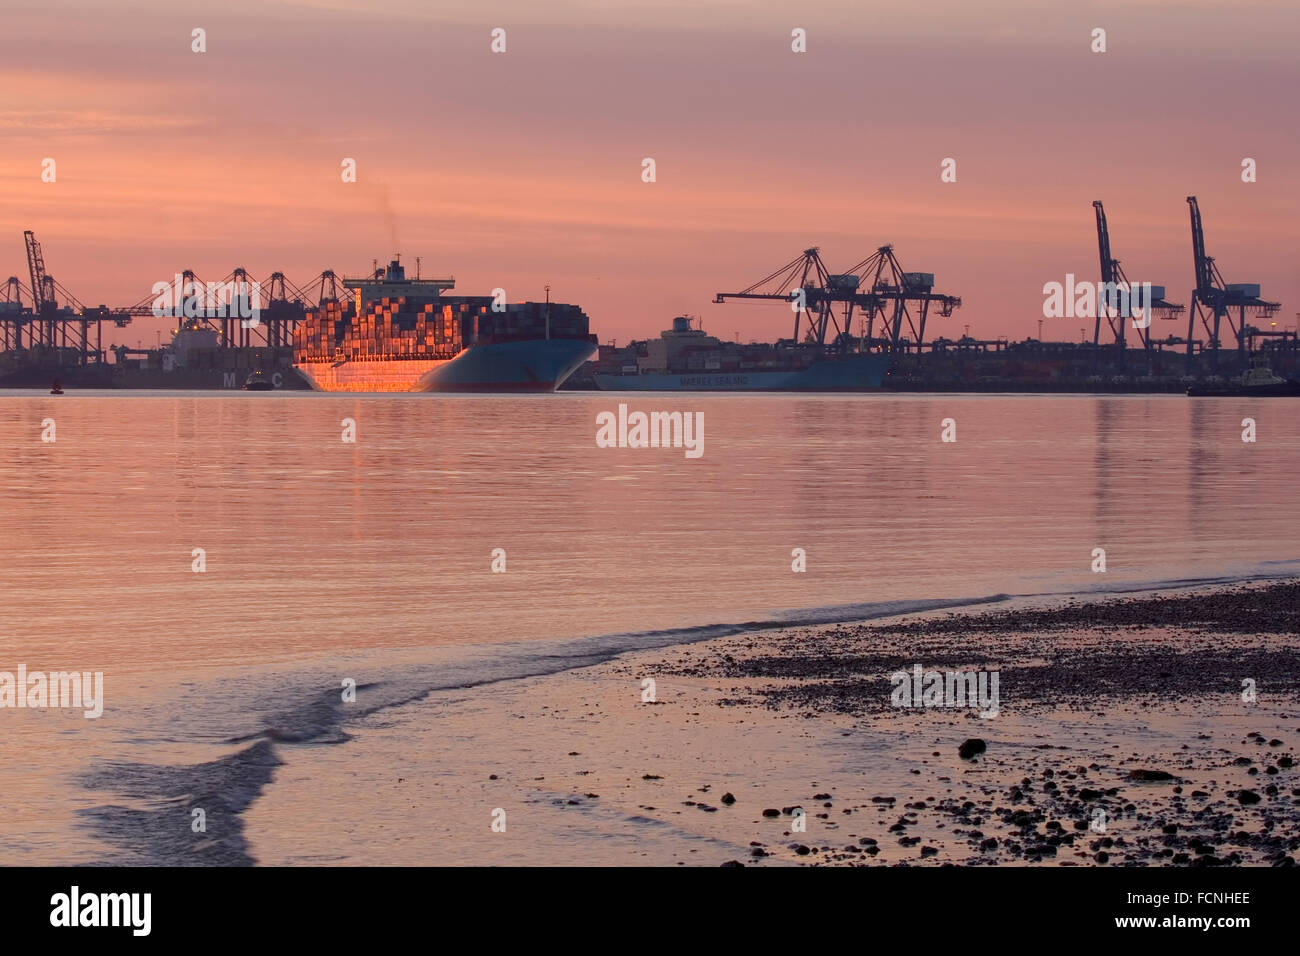 Fully laden container ship, departing from Felixstowe at sunset, with cranes and docks in the background, June 2008 - Stock Image